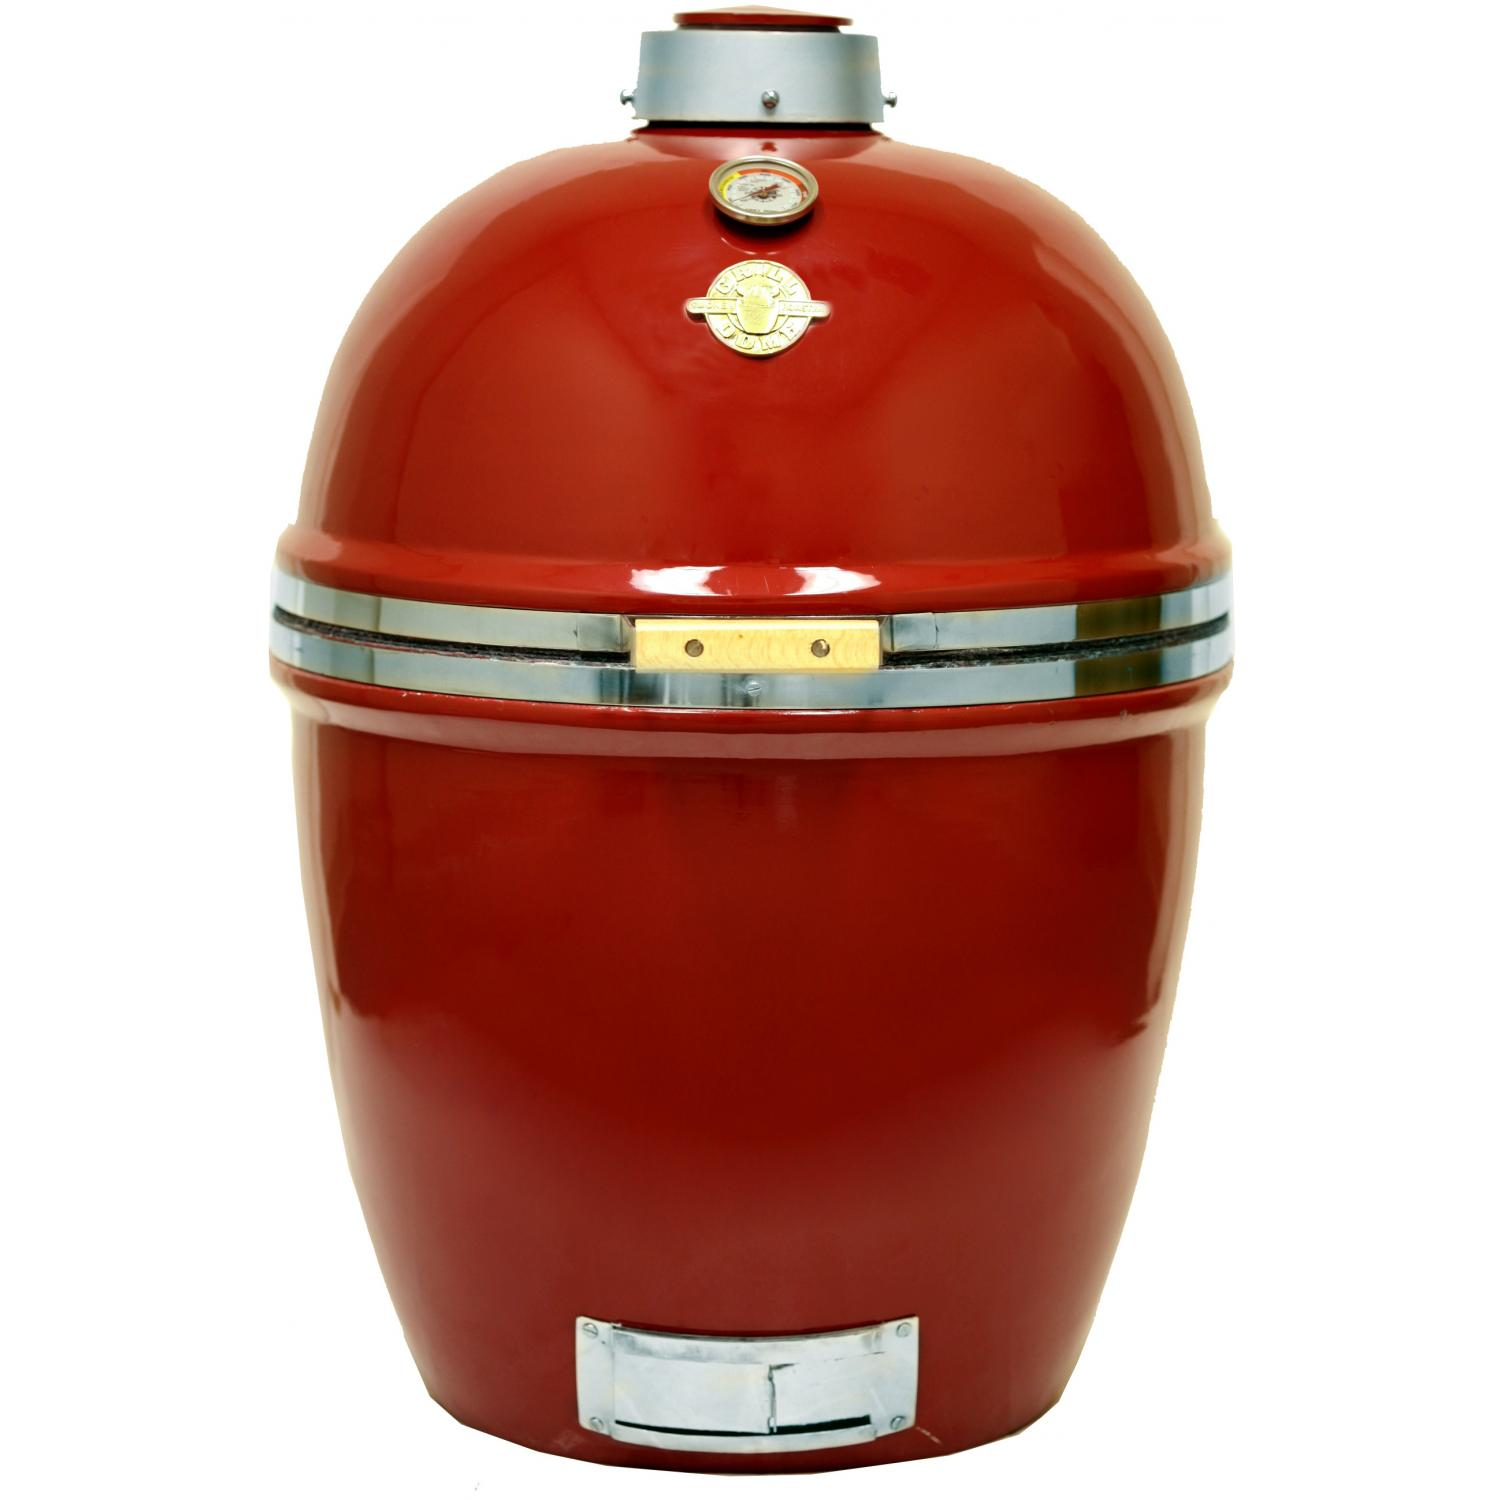 Grill Dome Infinity Series Large Kamado Grill - Red, Discount ID GDL-RD